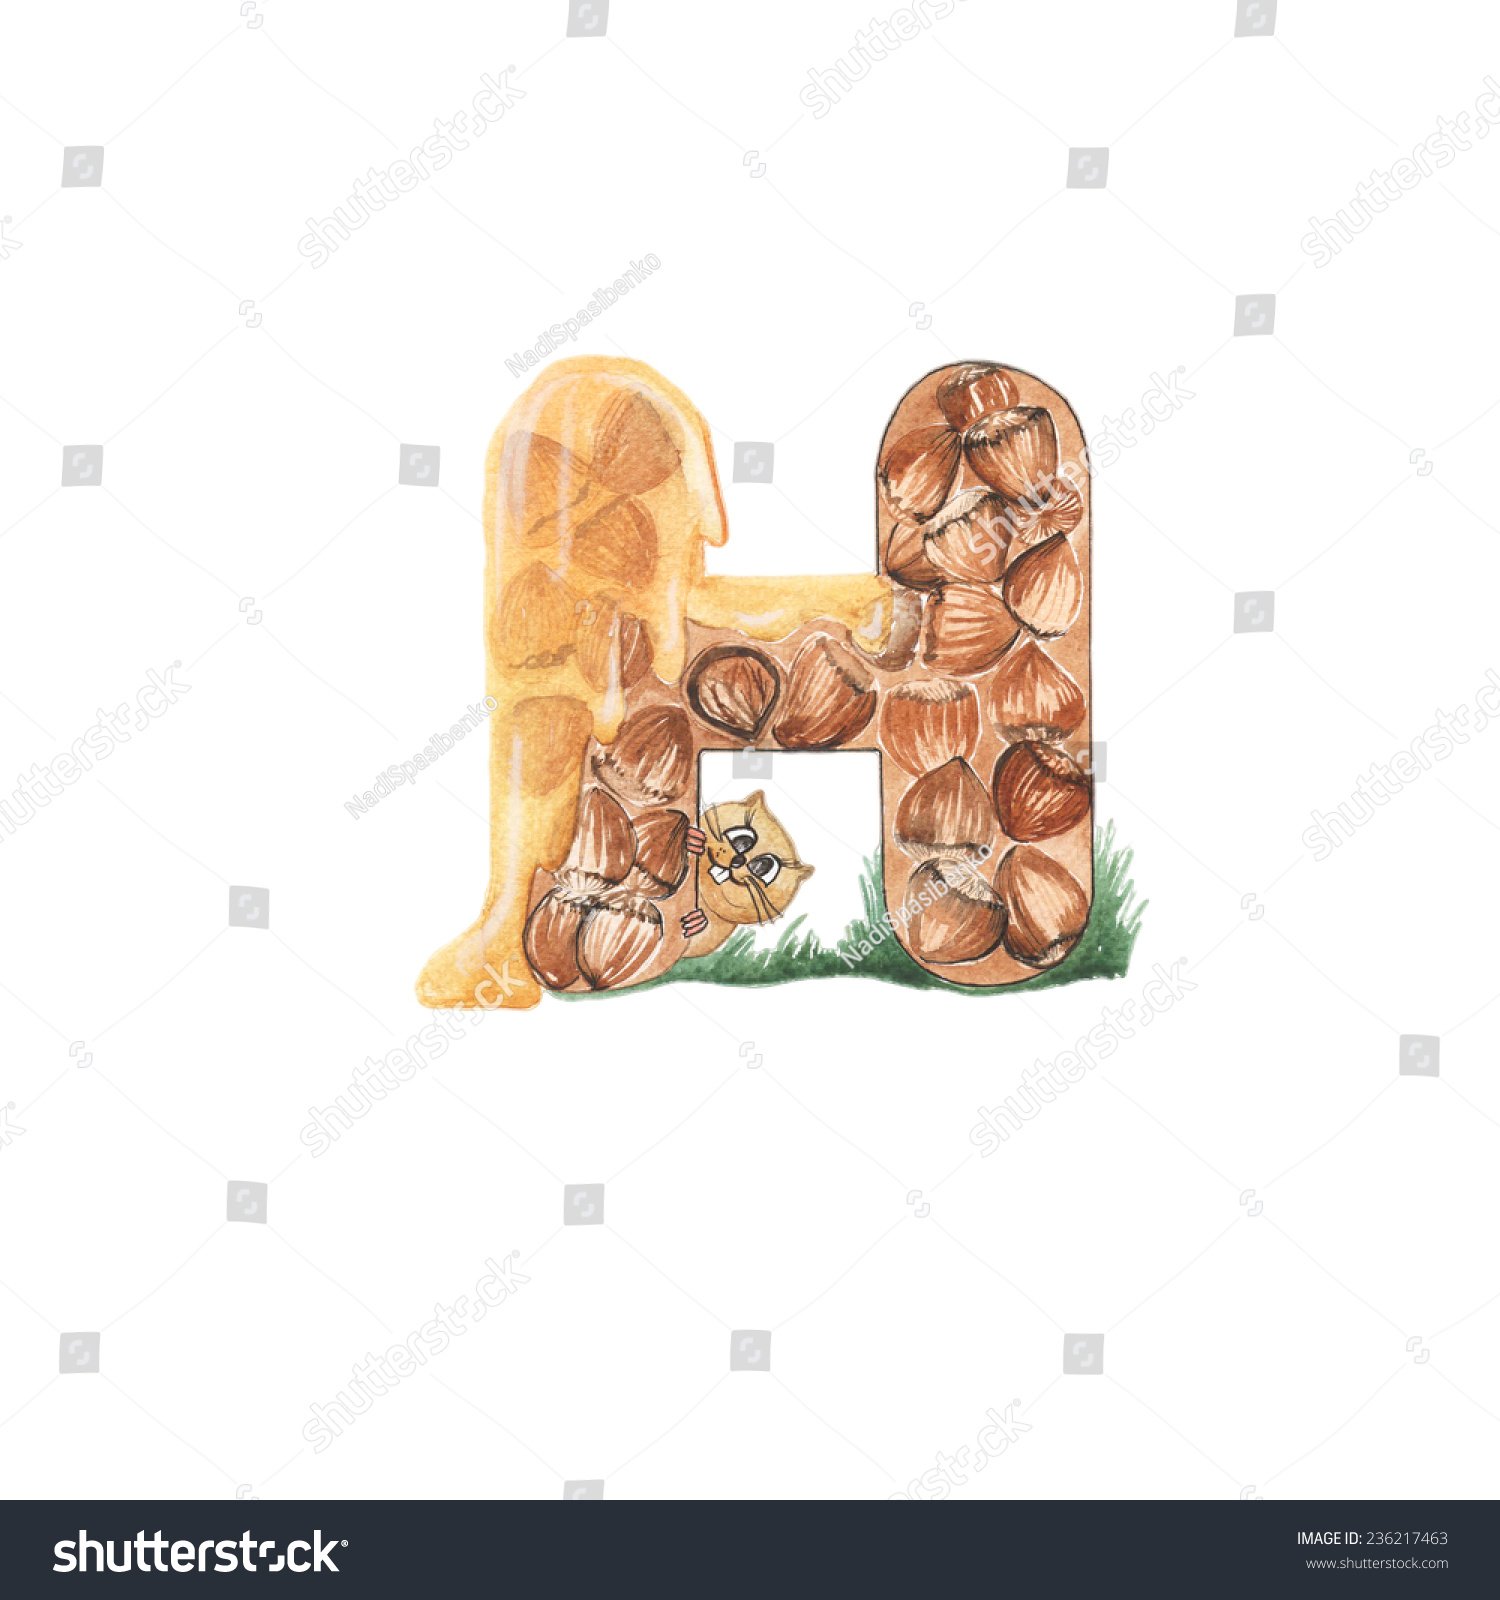 english alphabet cartoon consist letters animal stock illustration consist of letters and animal food letter h hamster